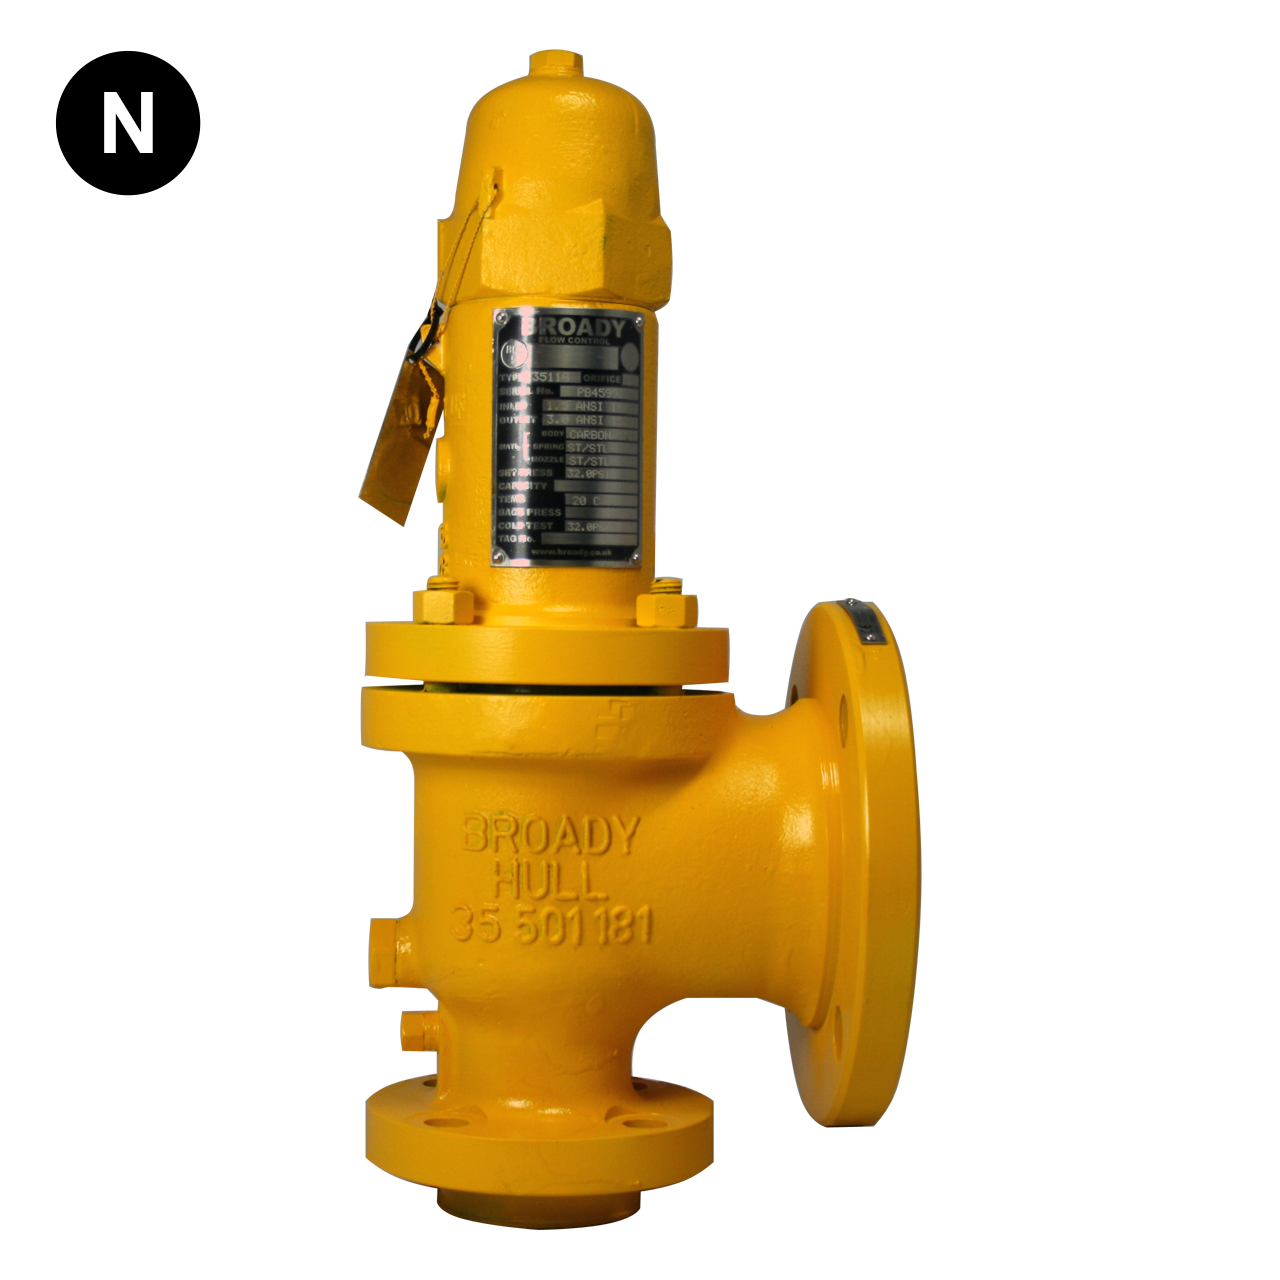 Broady 3500 Safety Relief Valve (UK Castings) Relief